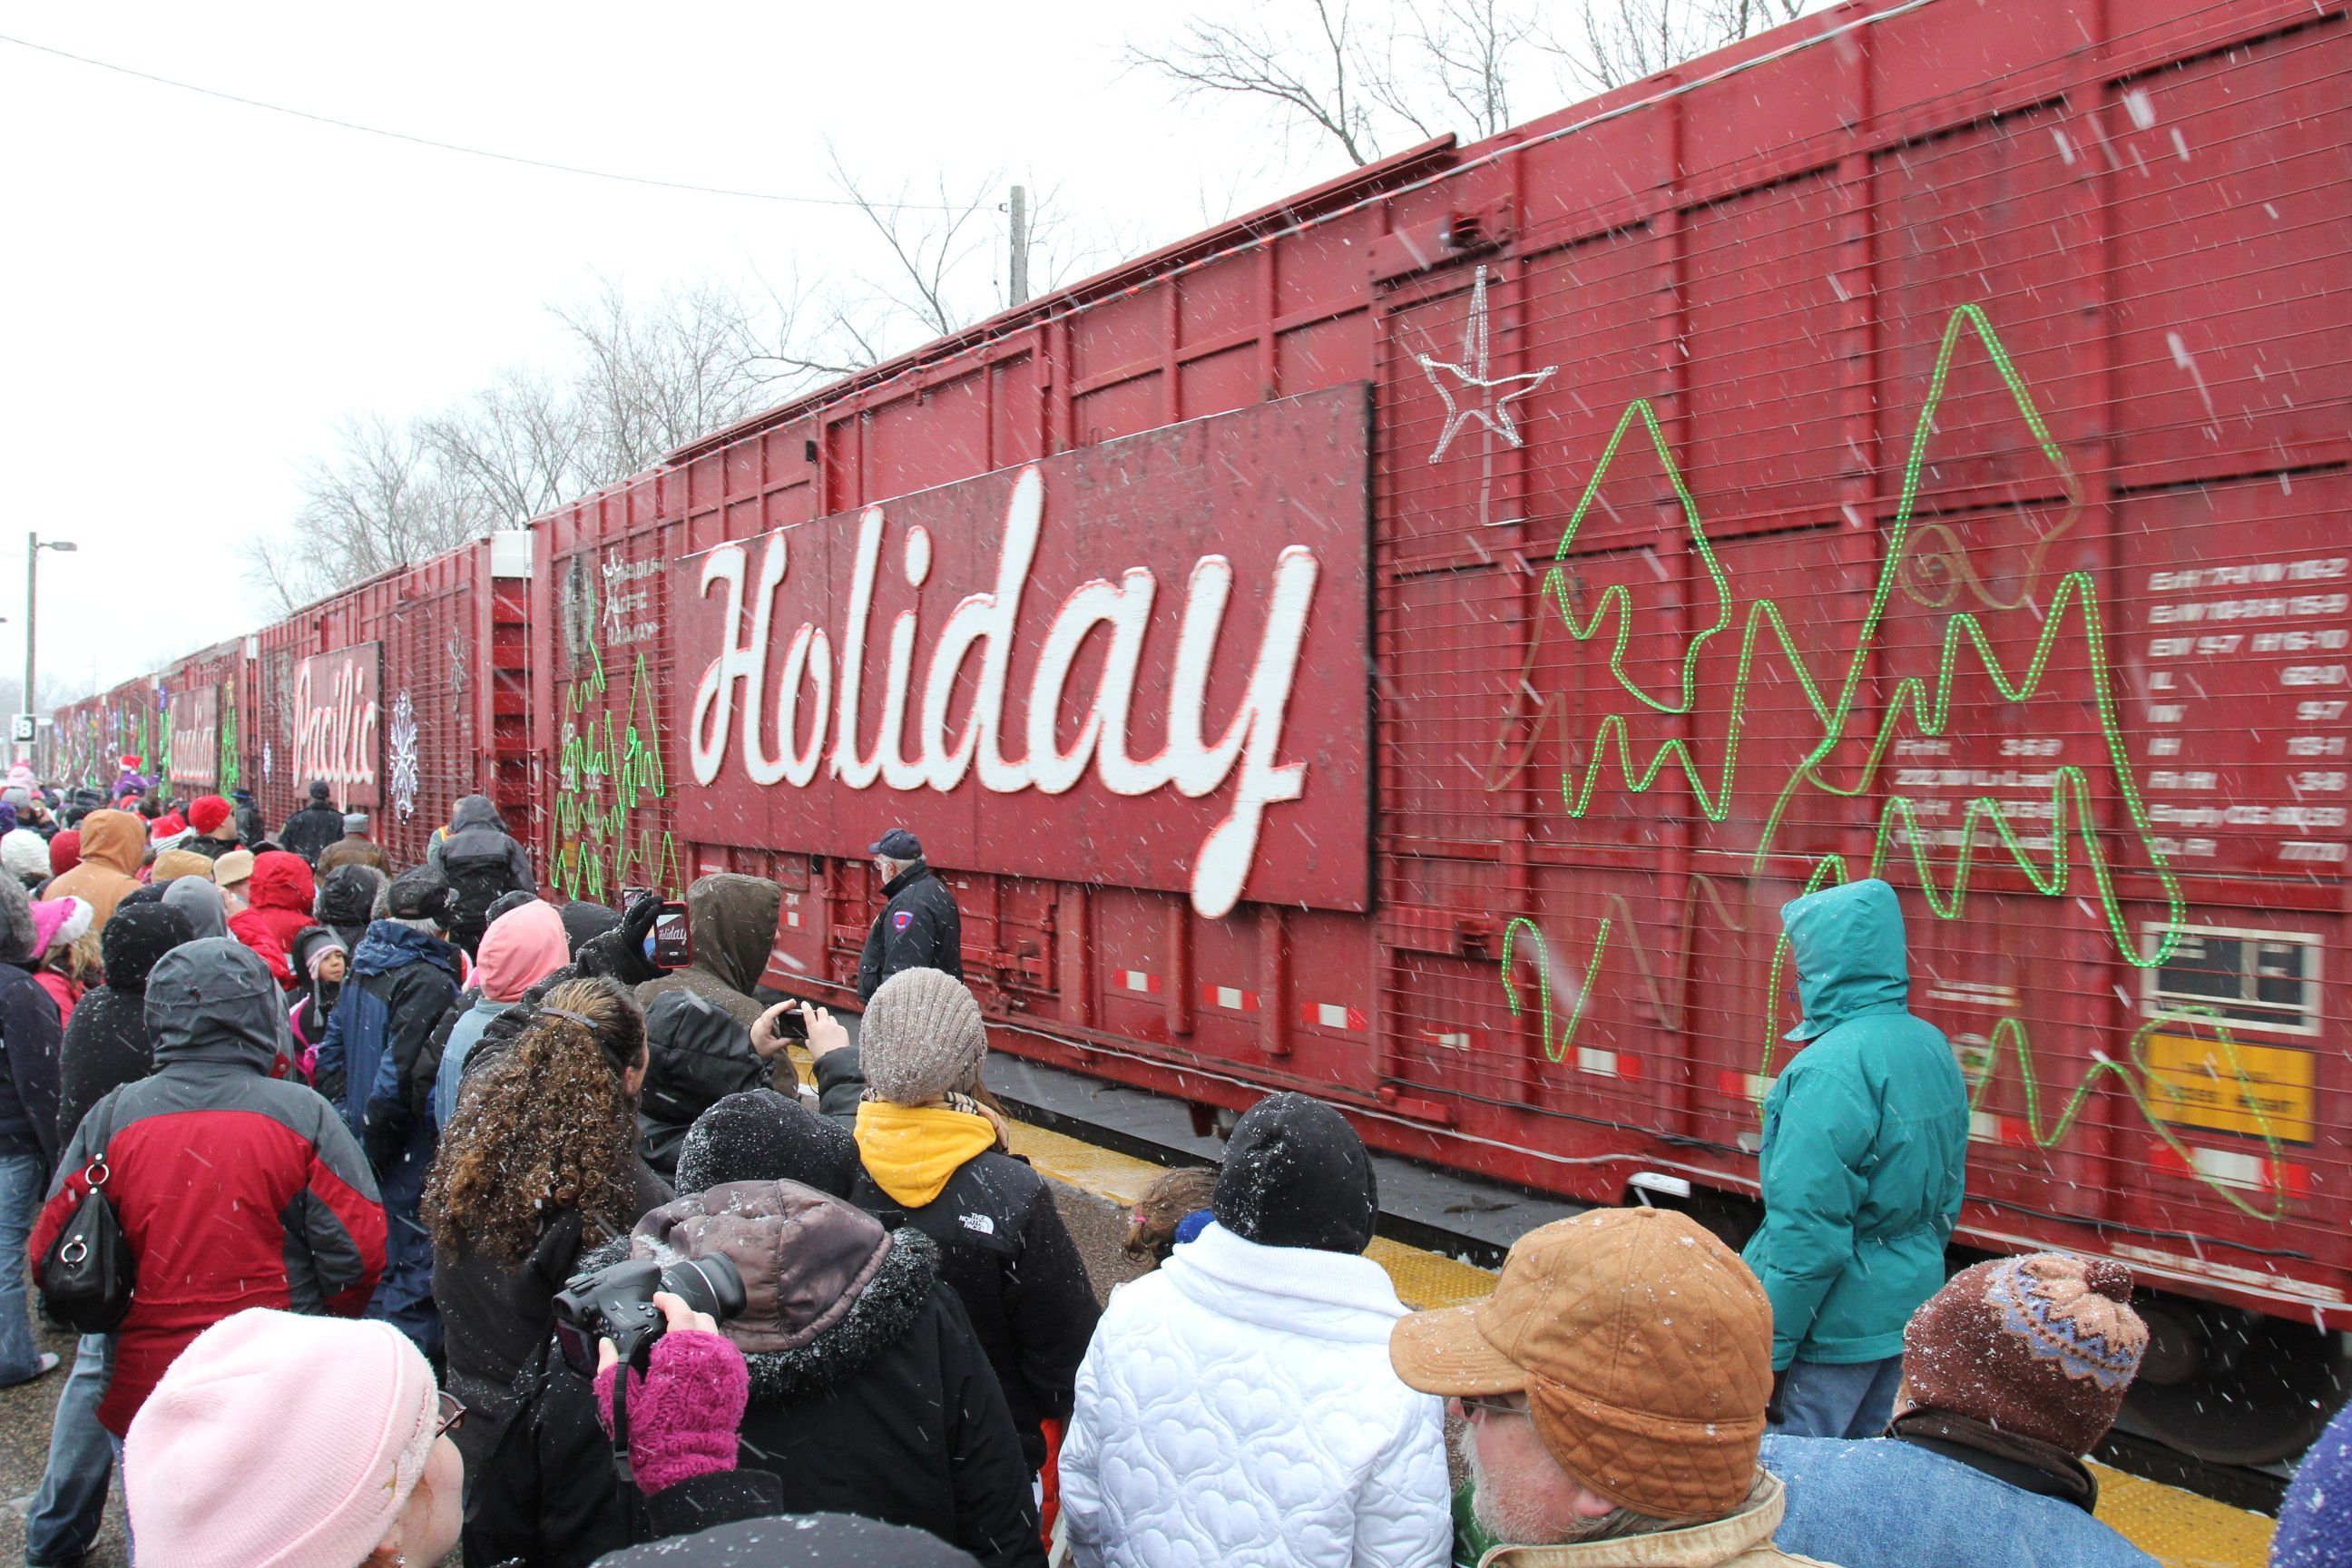 The holidaytrain as it pulls into the dells train